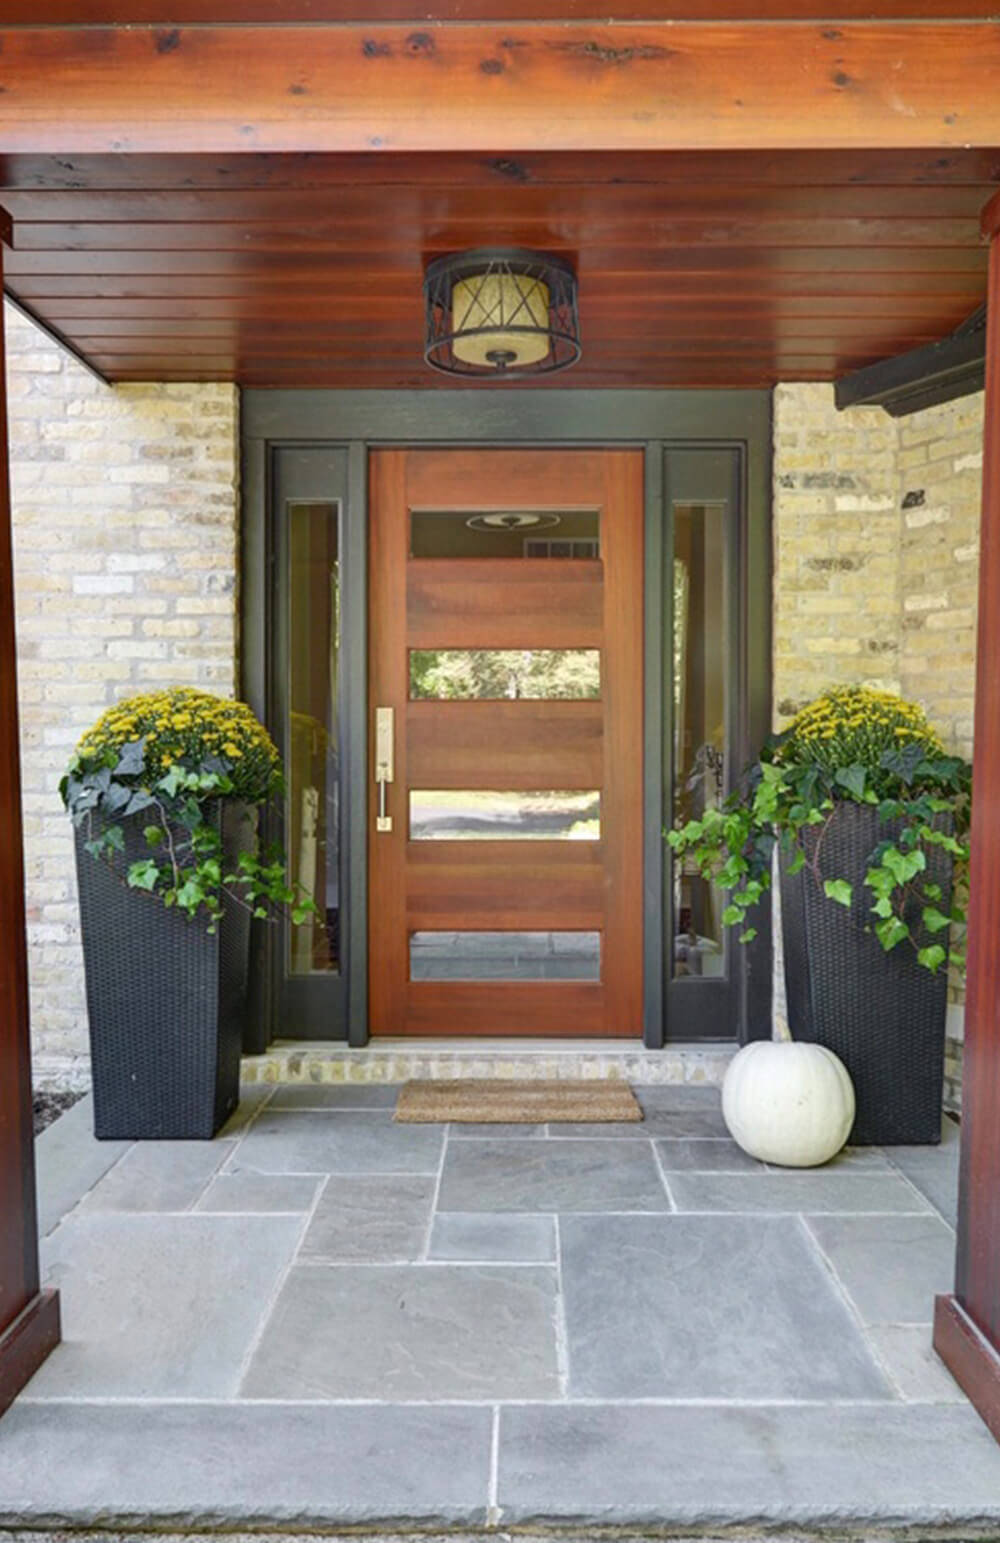 Calgary Replacement Windows - Cossins Windows - Cossins Replacement ...